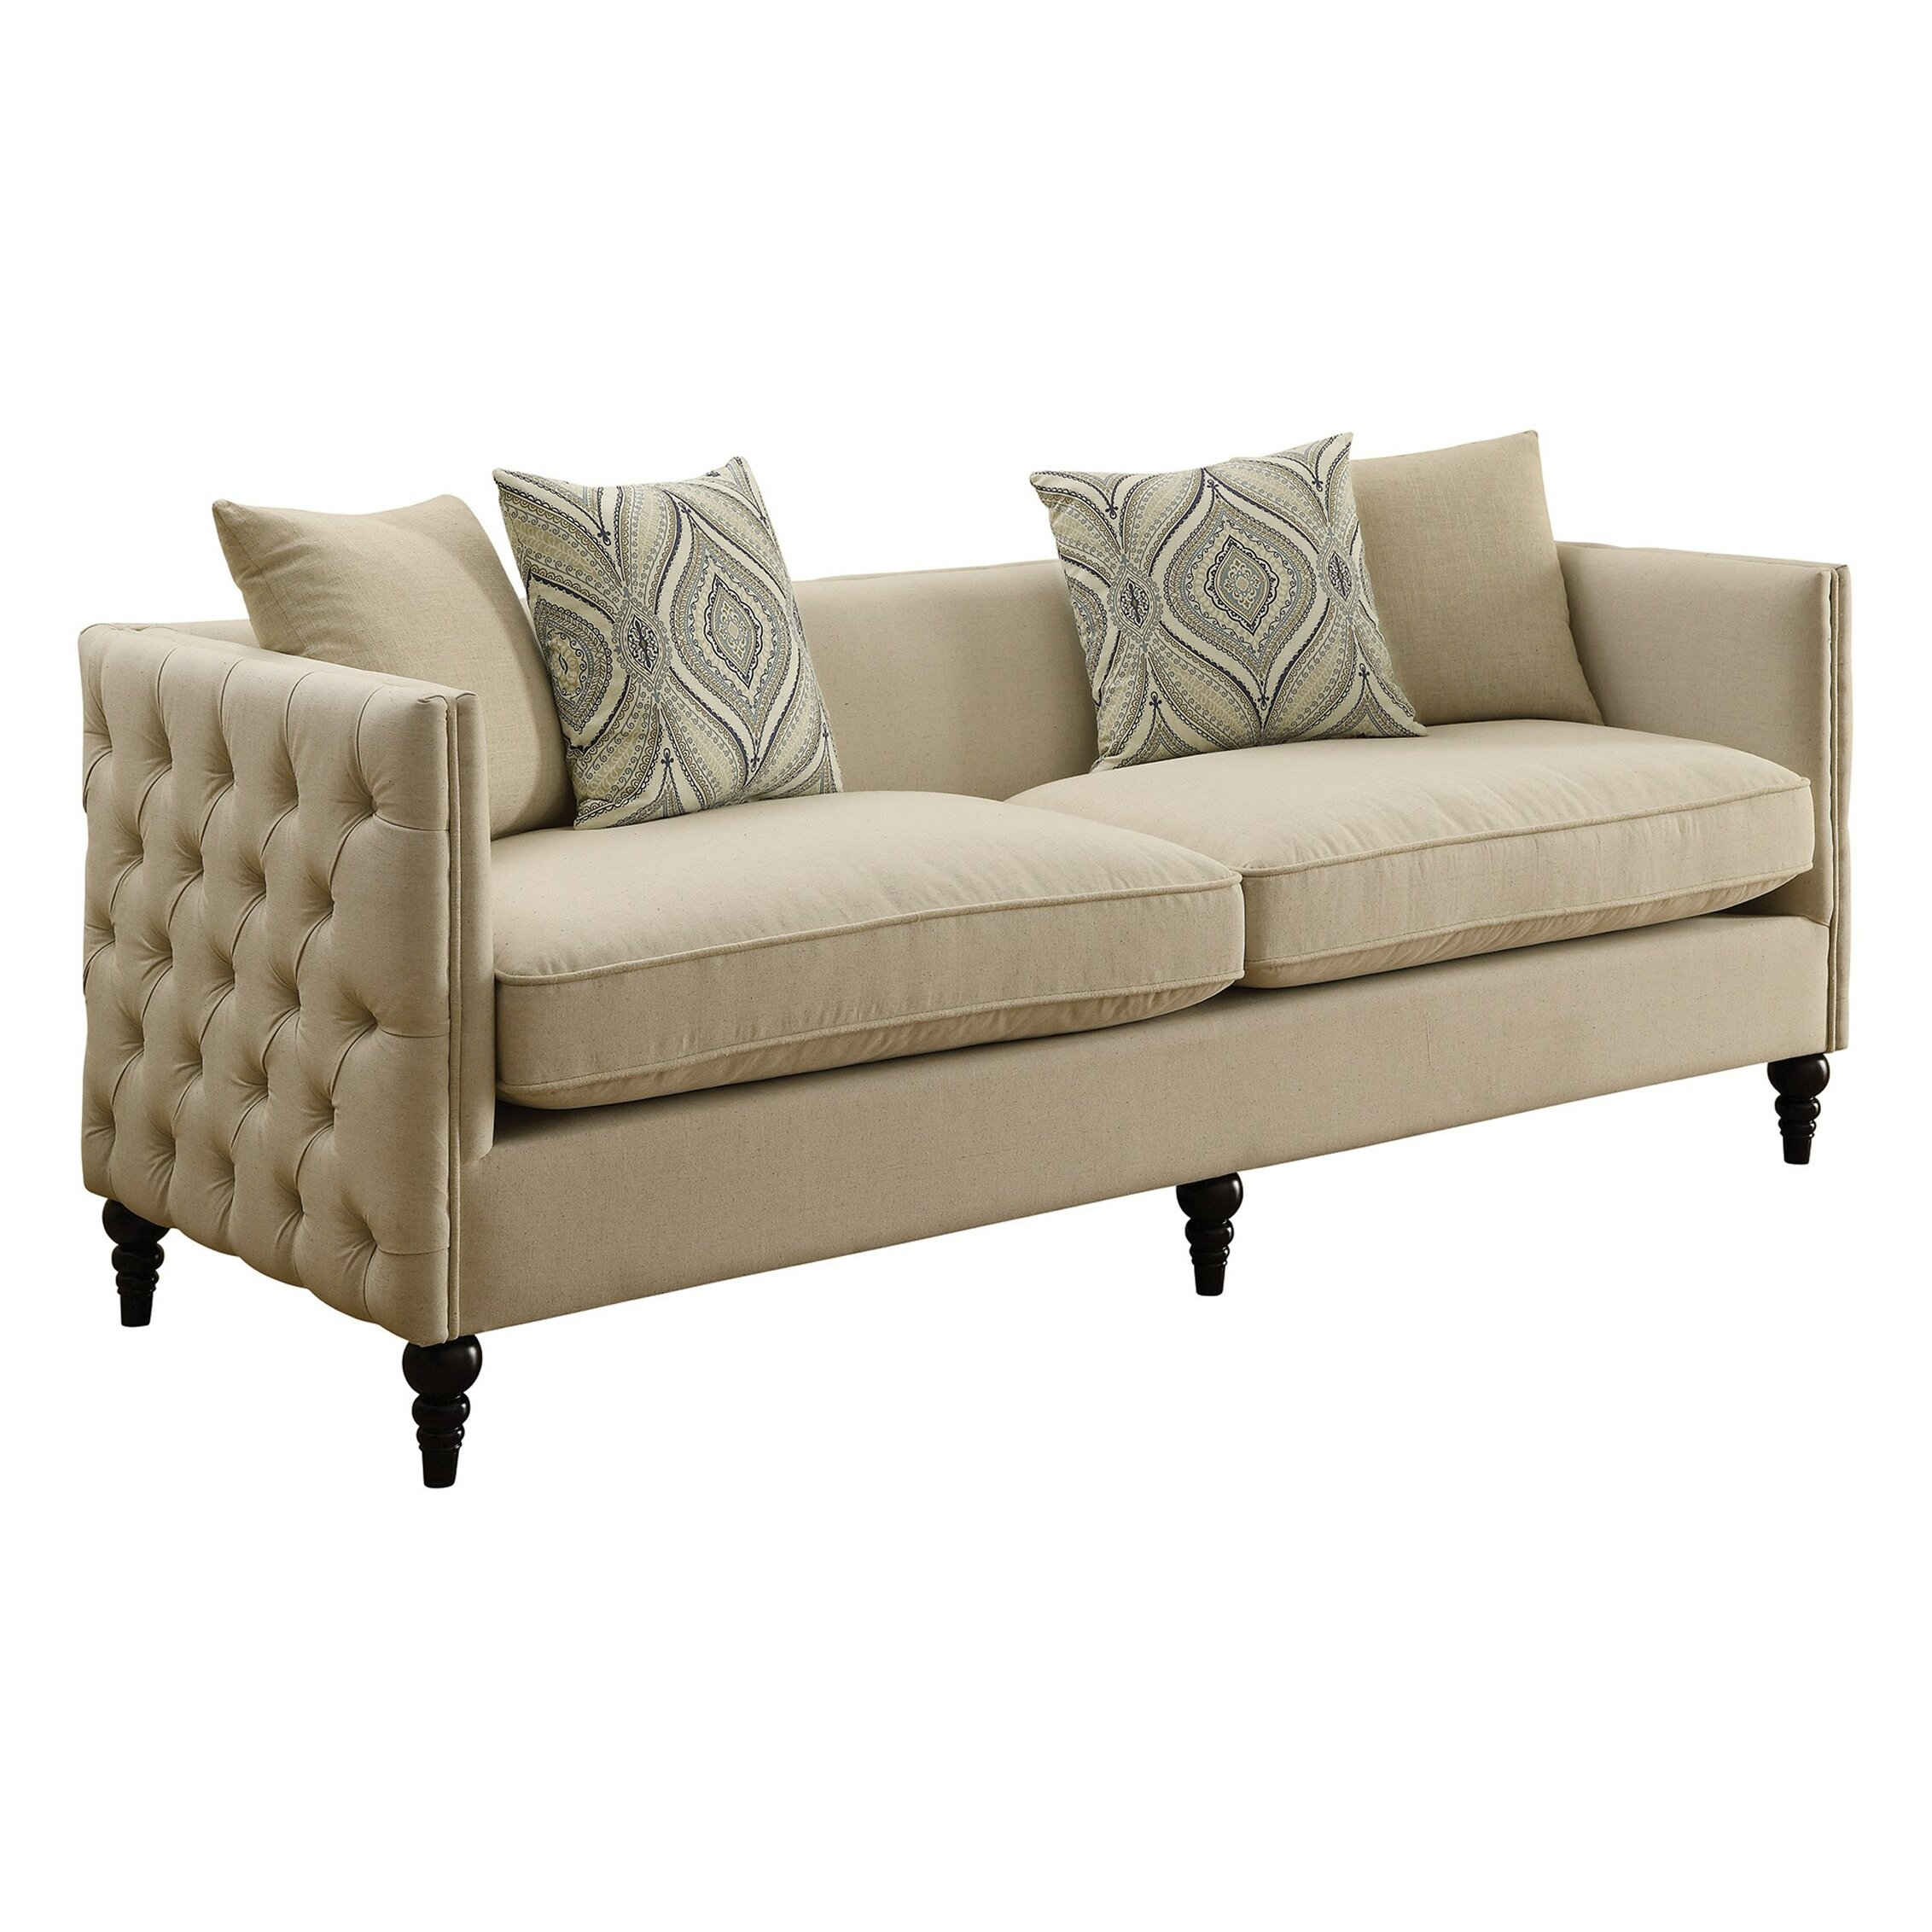 infini furnishings new rochelle sofa and loveseat set wayfair. Black Bedroom Furniture Sets. Home Design Ideas